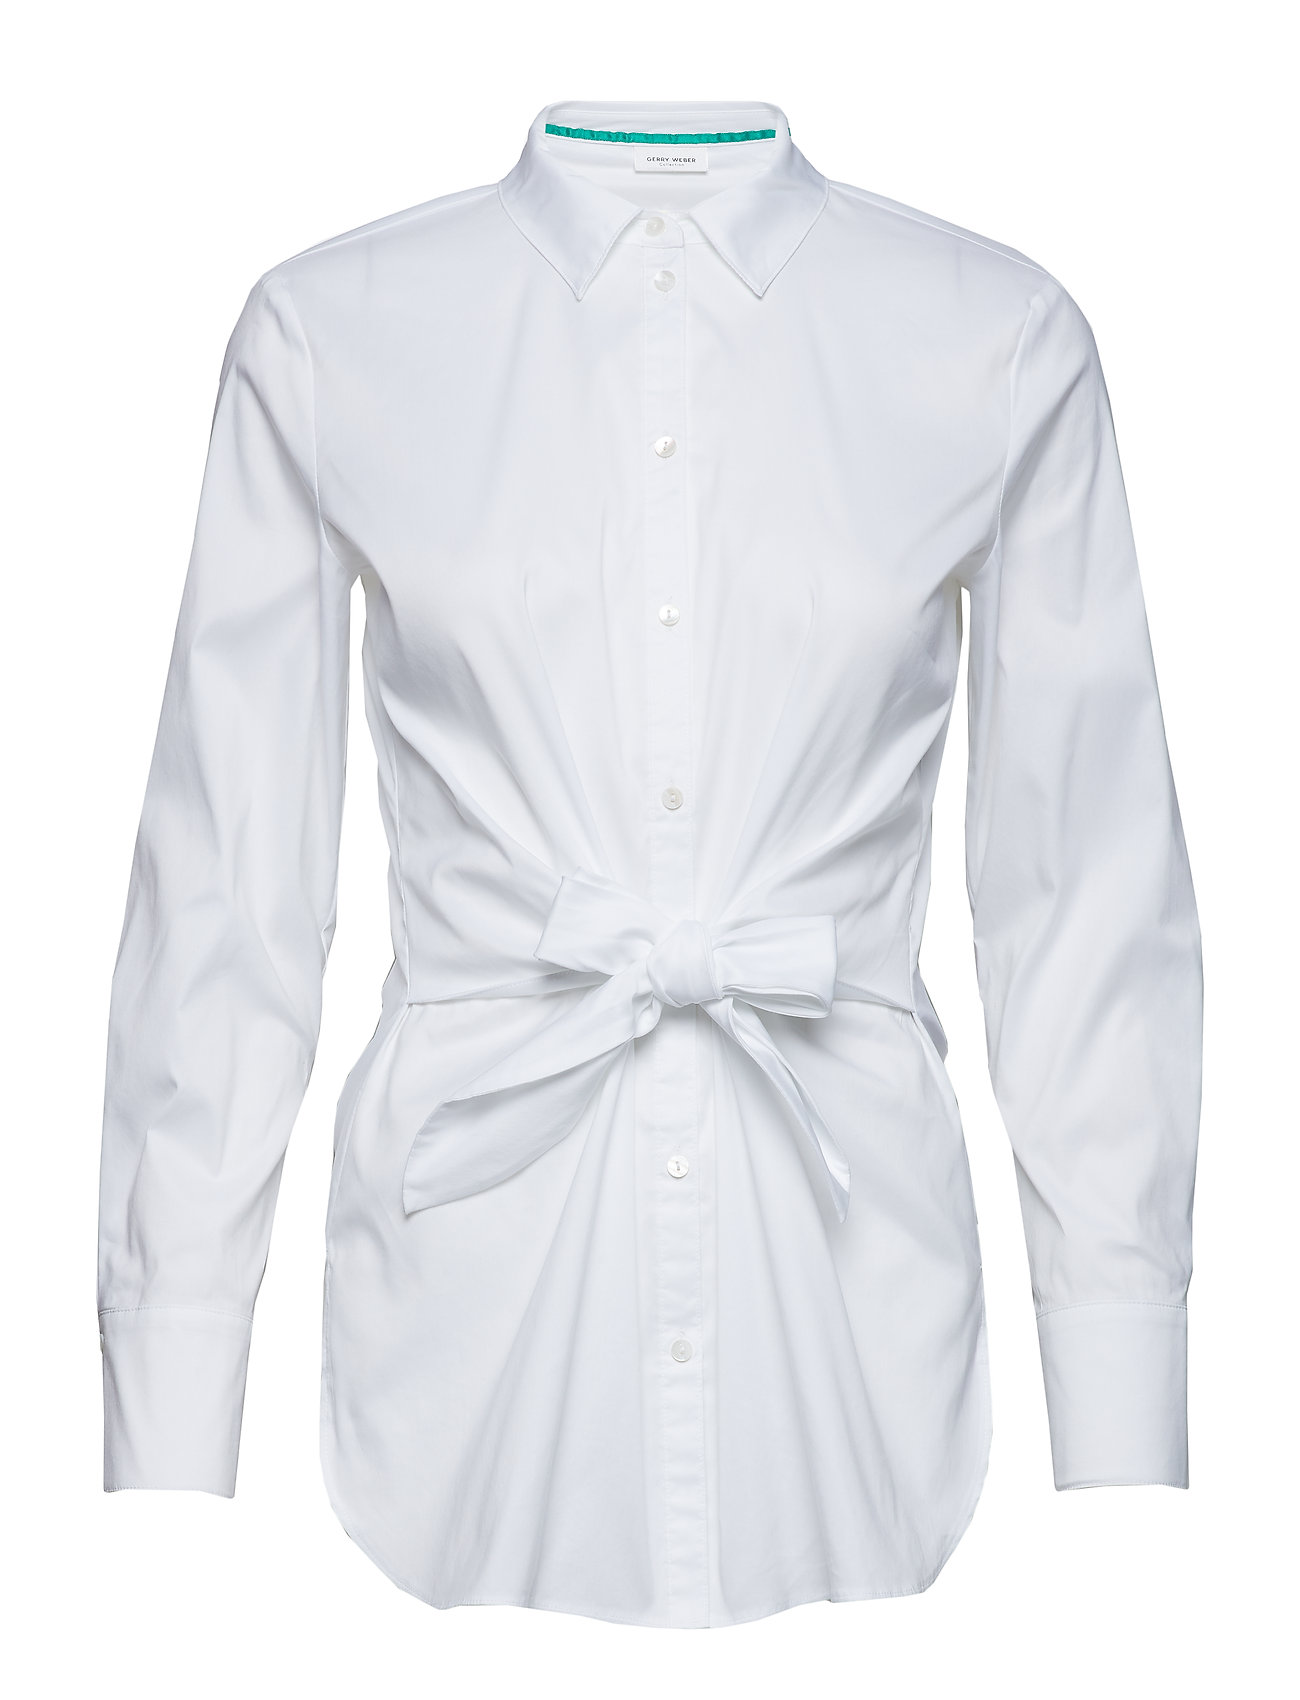 Gerry Weber BLOUSE LONG-SLEEVE - WHITE/WHITE